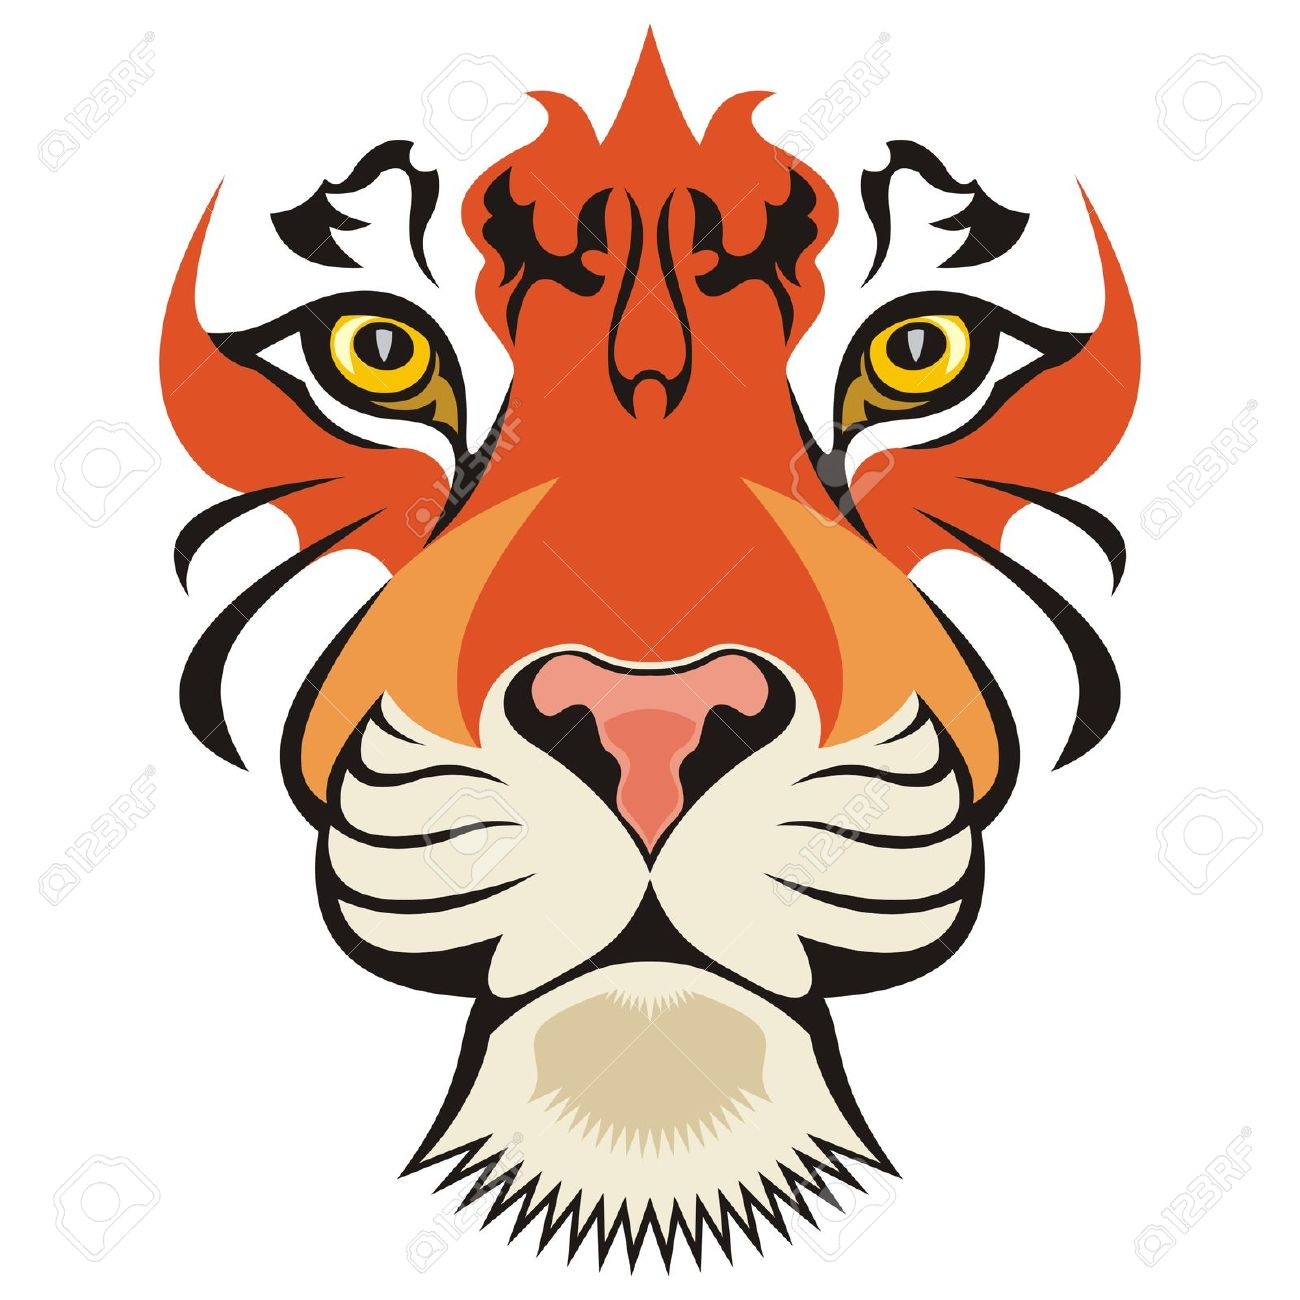 tiger vector royalty free cliparts vectors and stock illustration rh 123rf com tiger vector eps tiger vector image